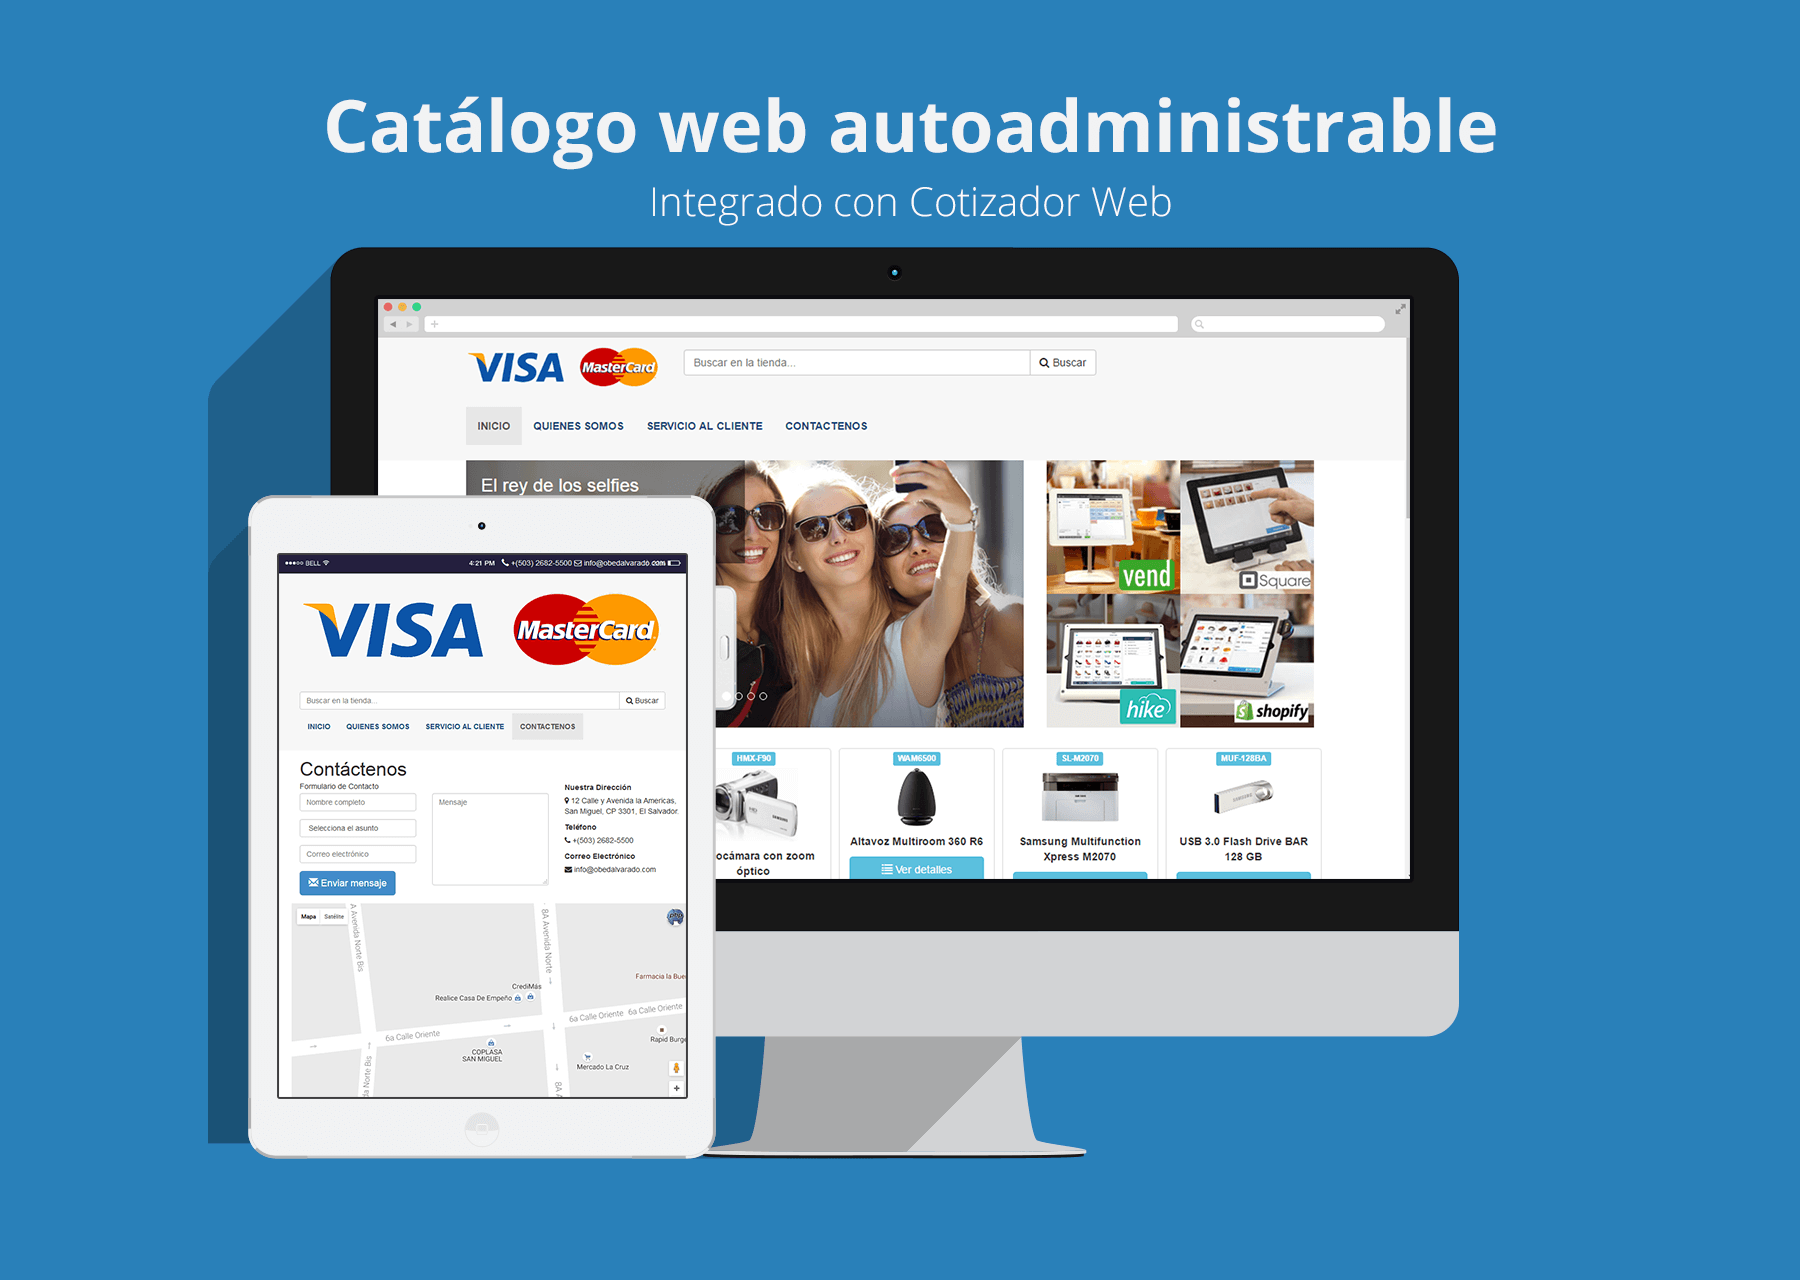 Catálogo web autoadministrable